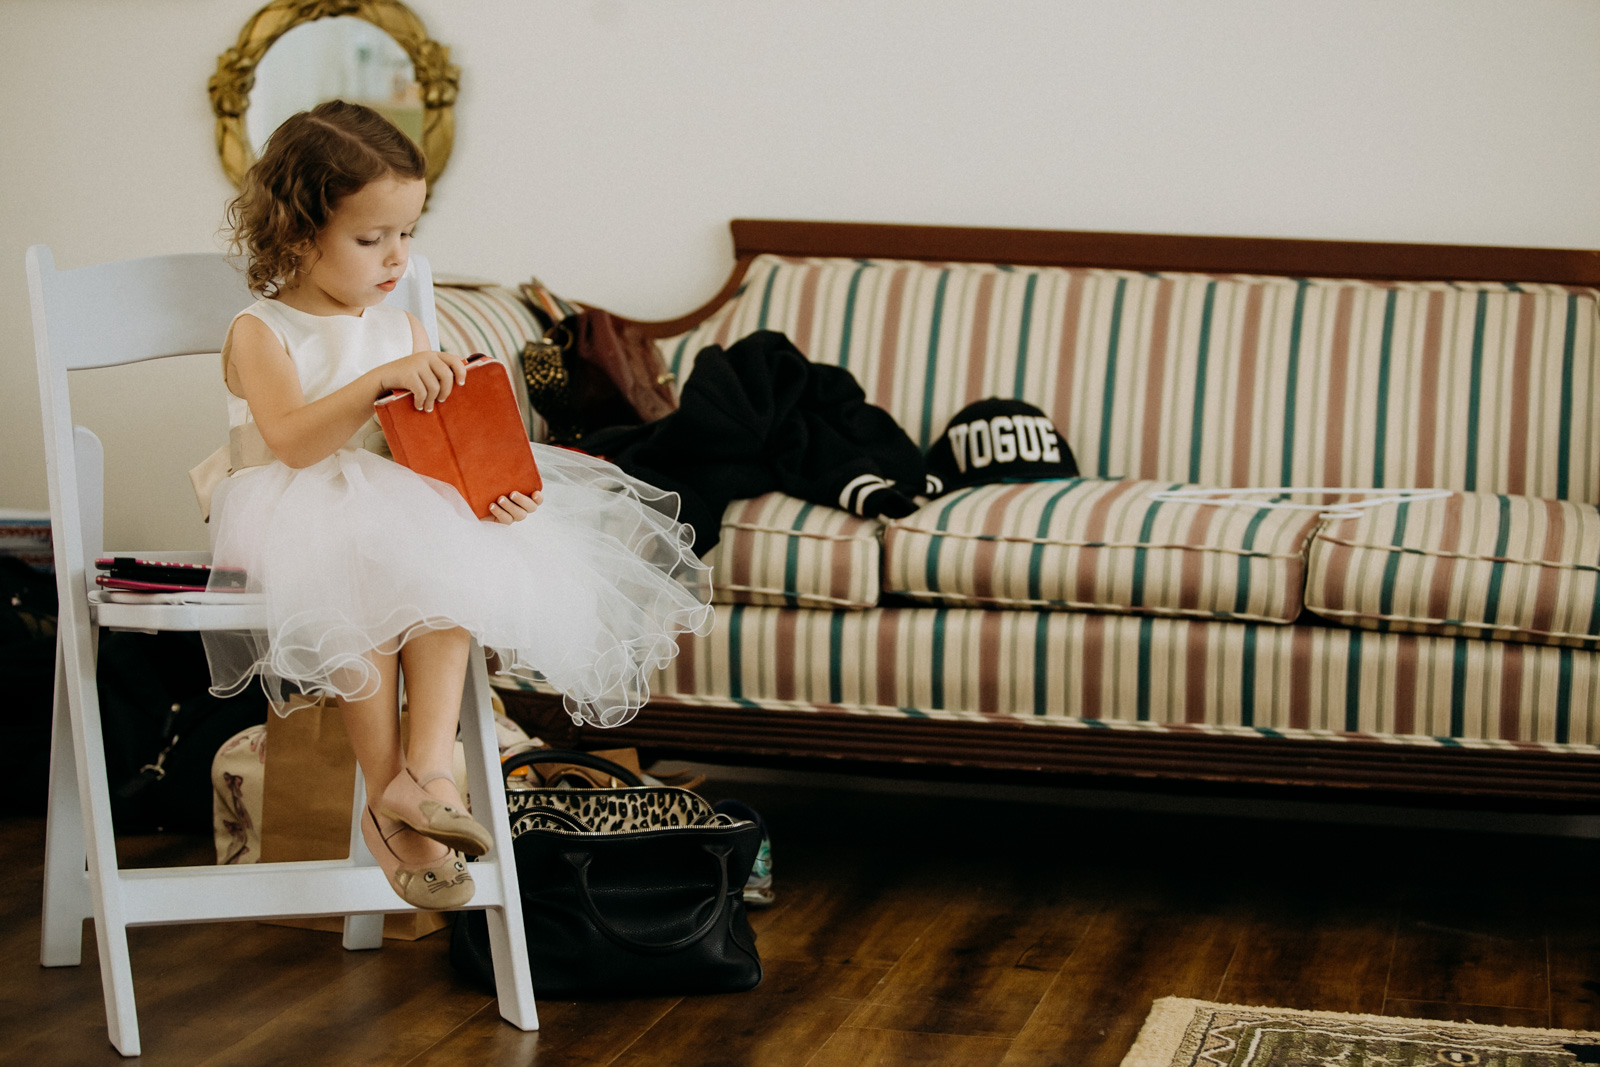 A flower girl playing with an ipad